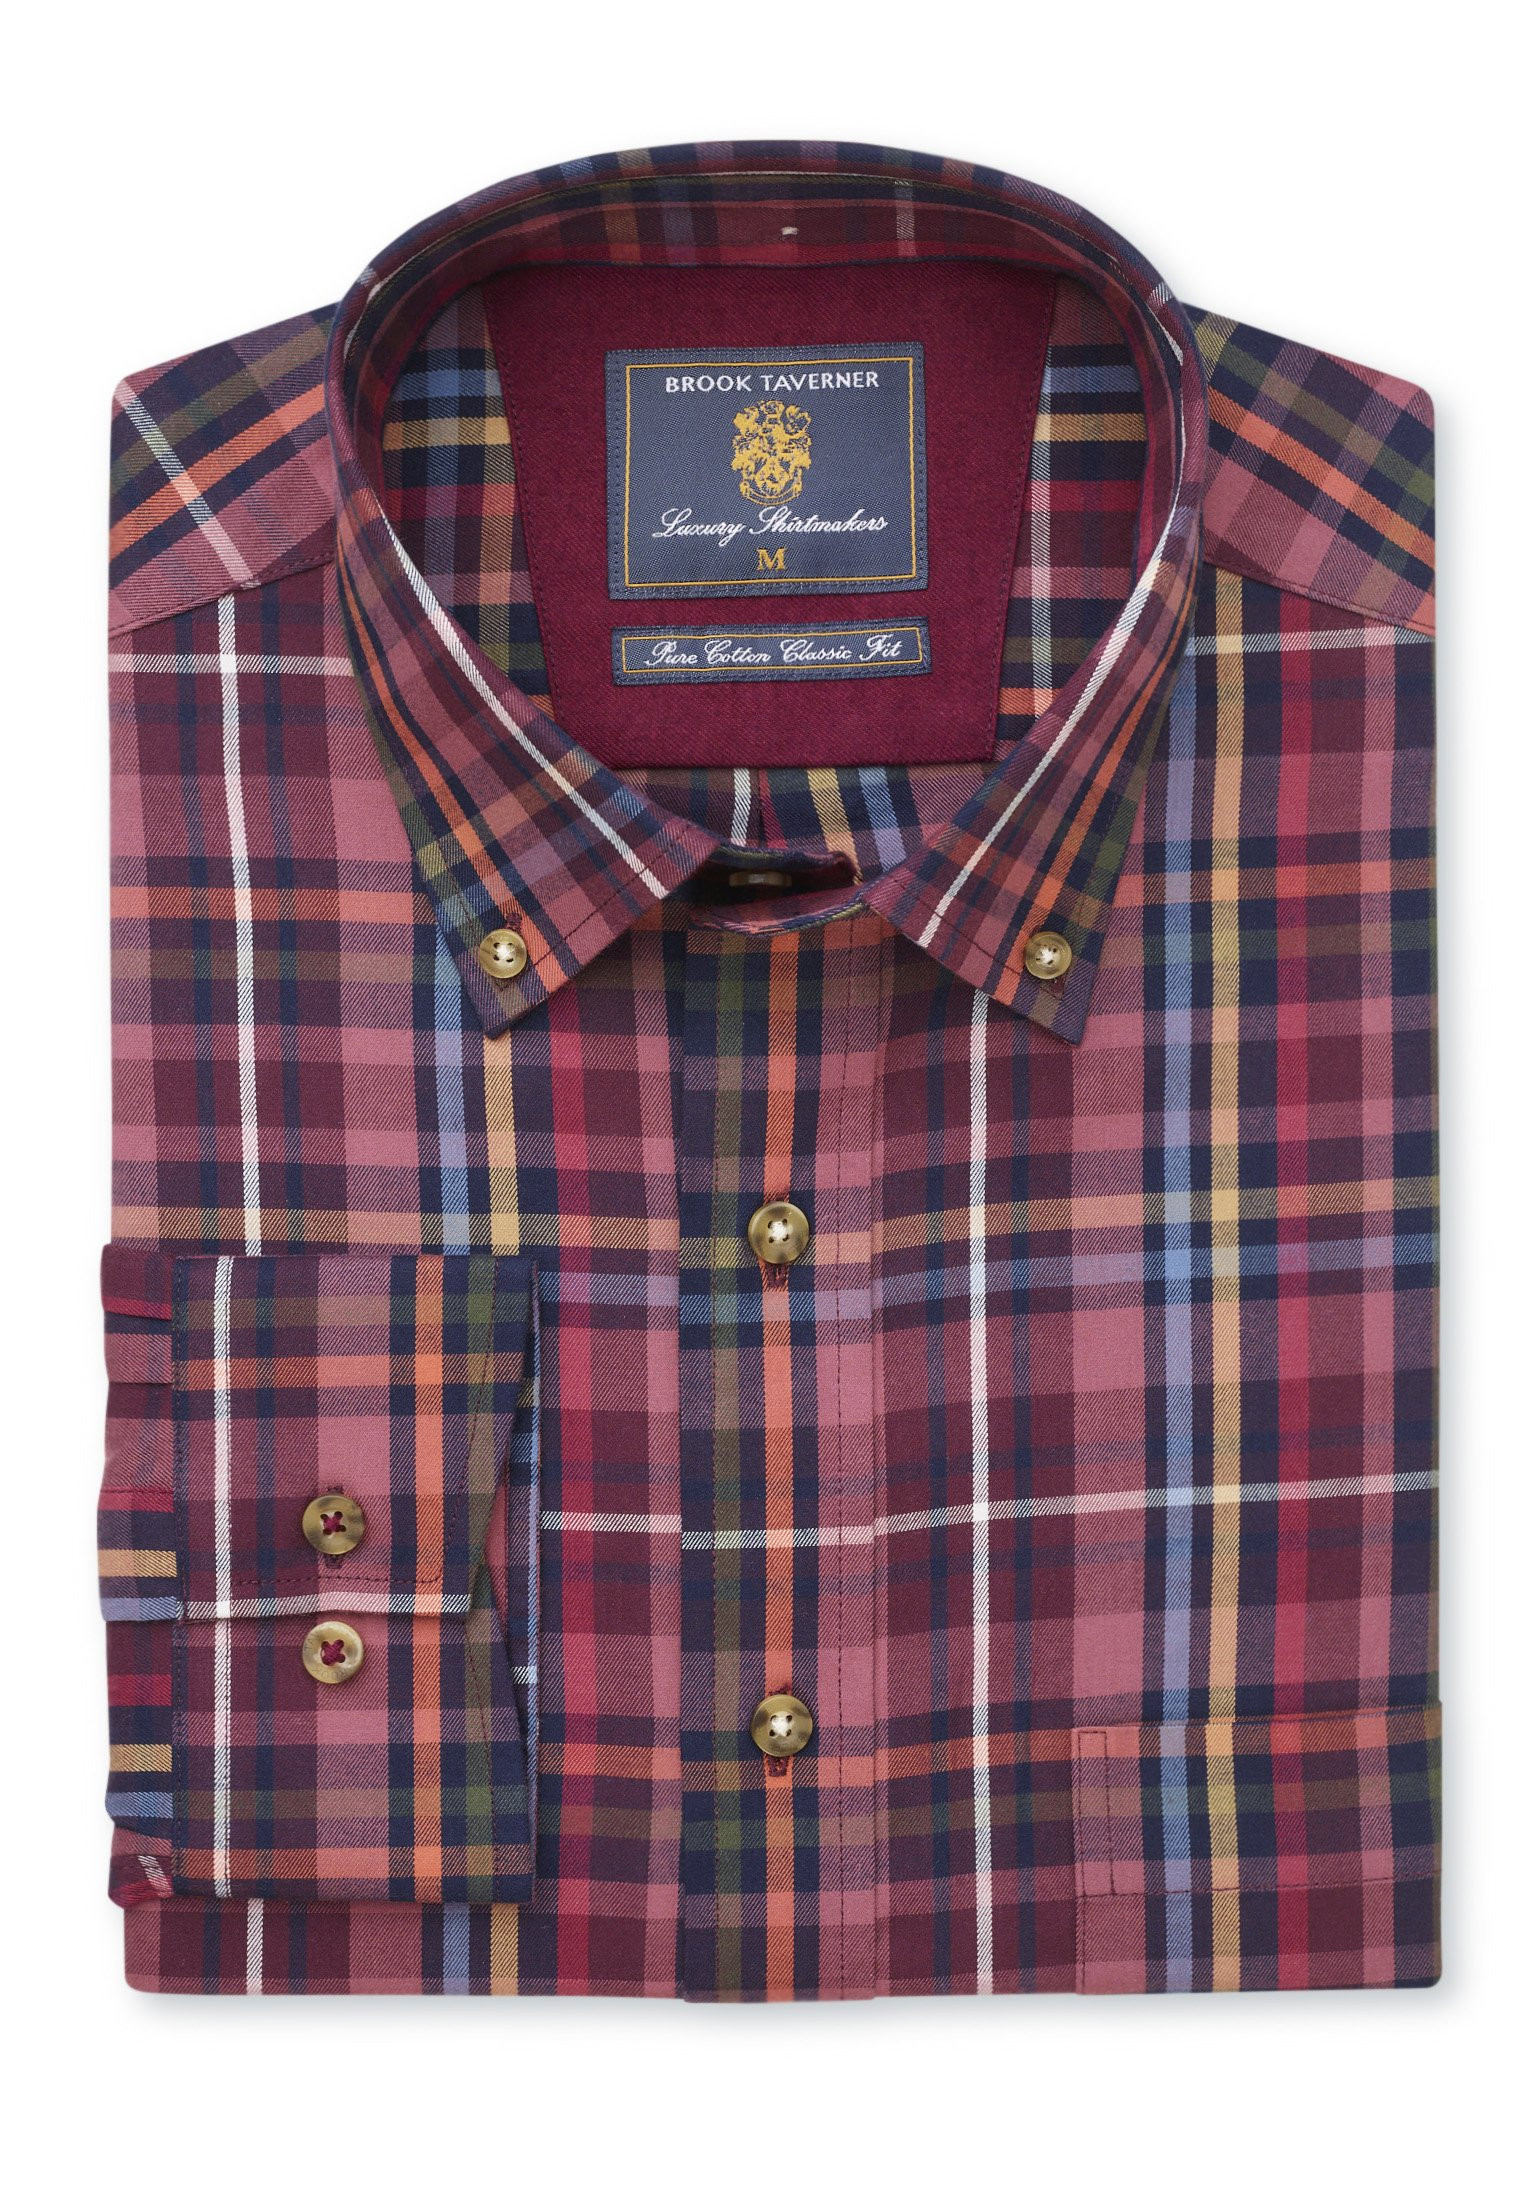 Classic Fit Cashmere Touch Wine With Mustard, Moss, Orange, Blue and Navy Check Shirt